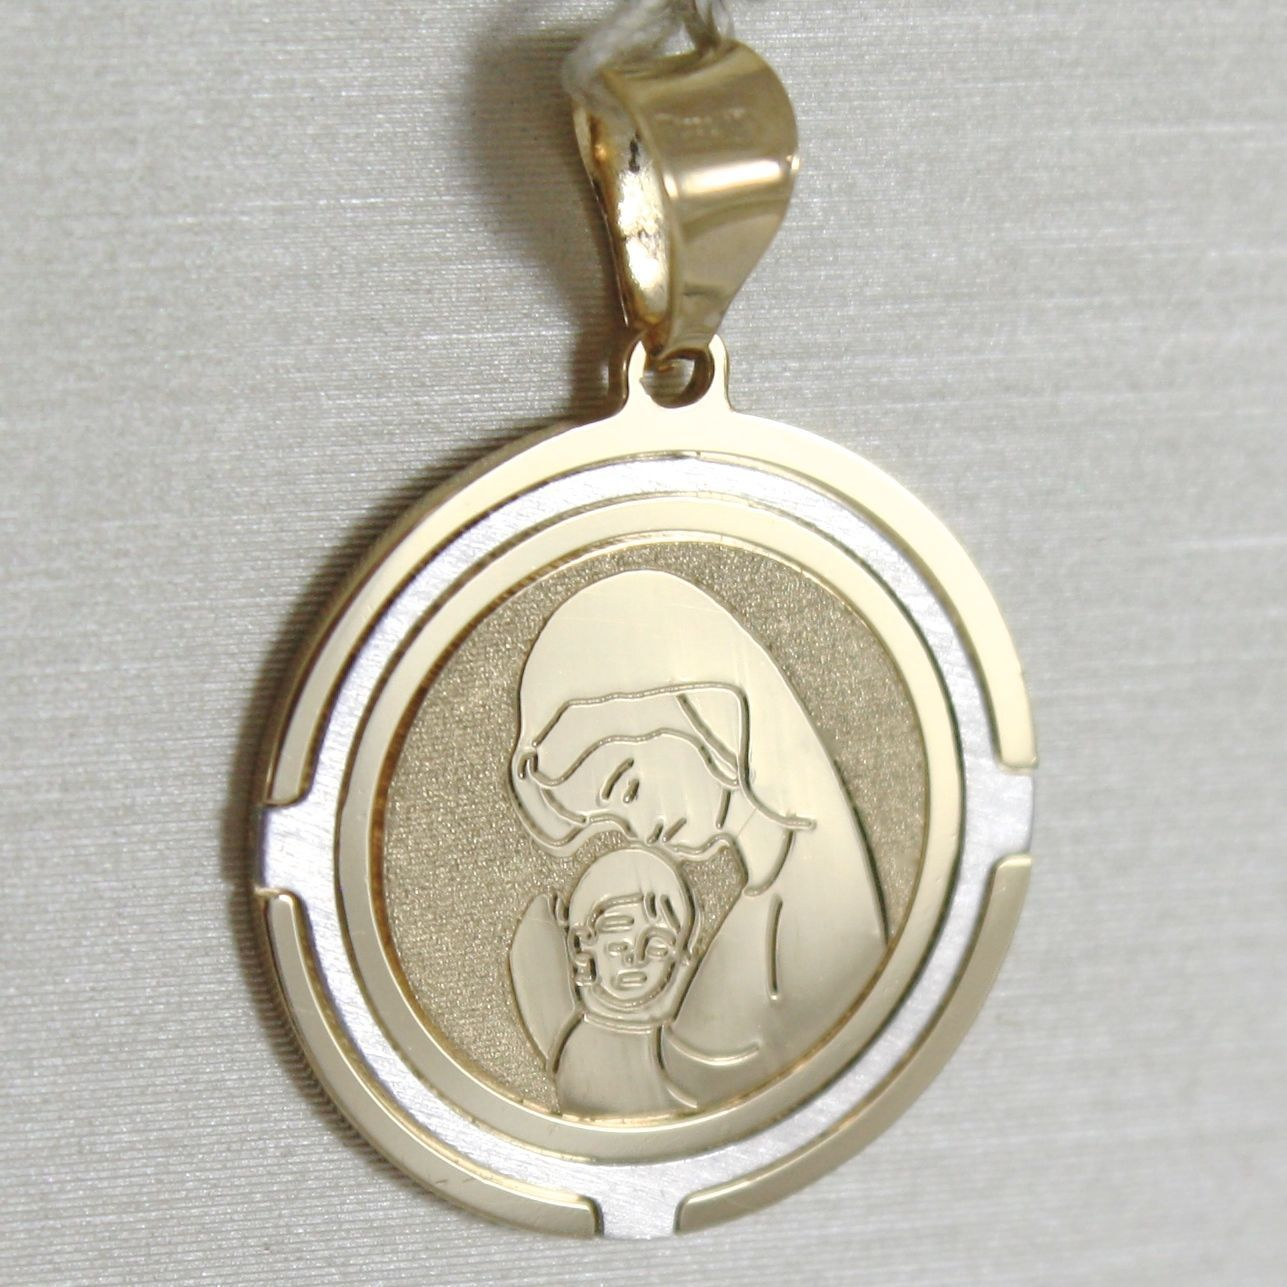 18K WHITE AND YELLOW GOLD MEDAL STYLIZED VIRGIN MARY AND JESUS MADE IN ITALY